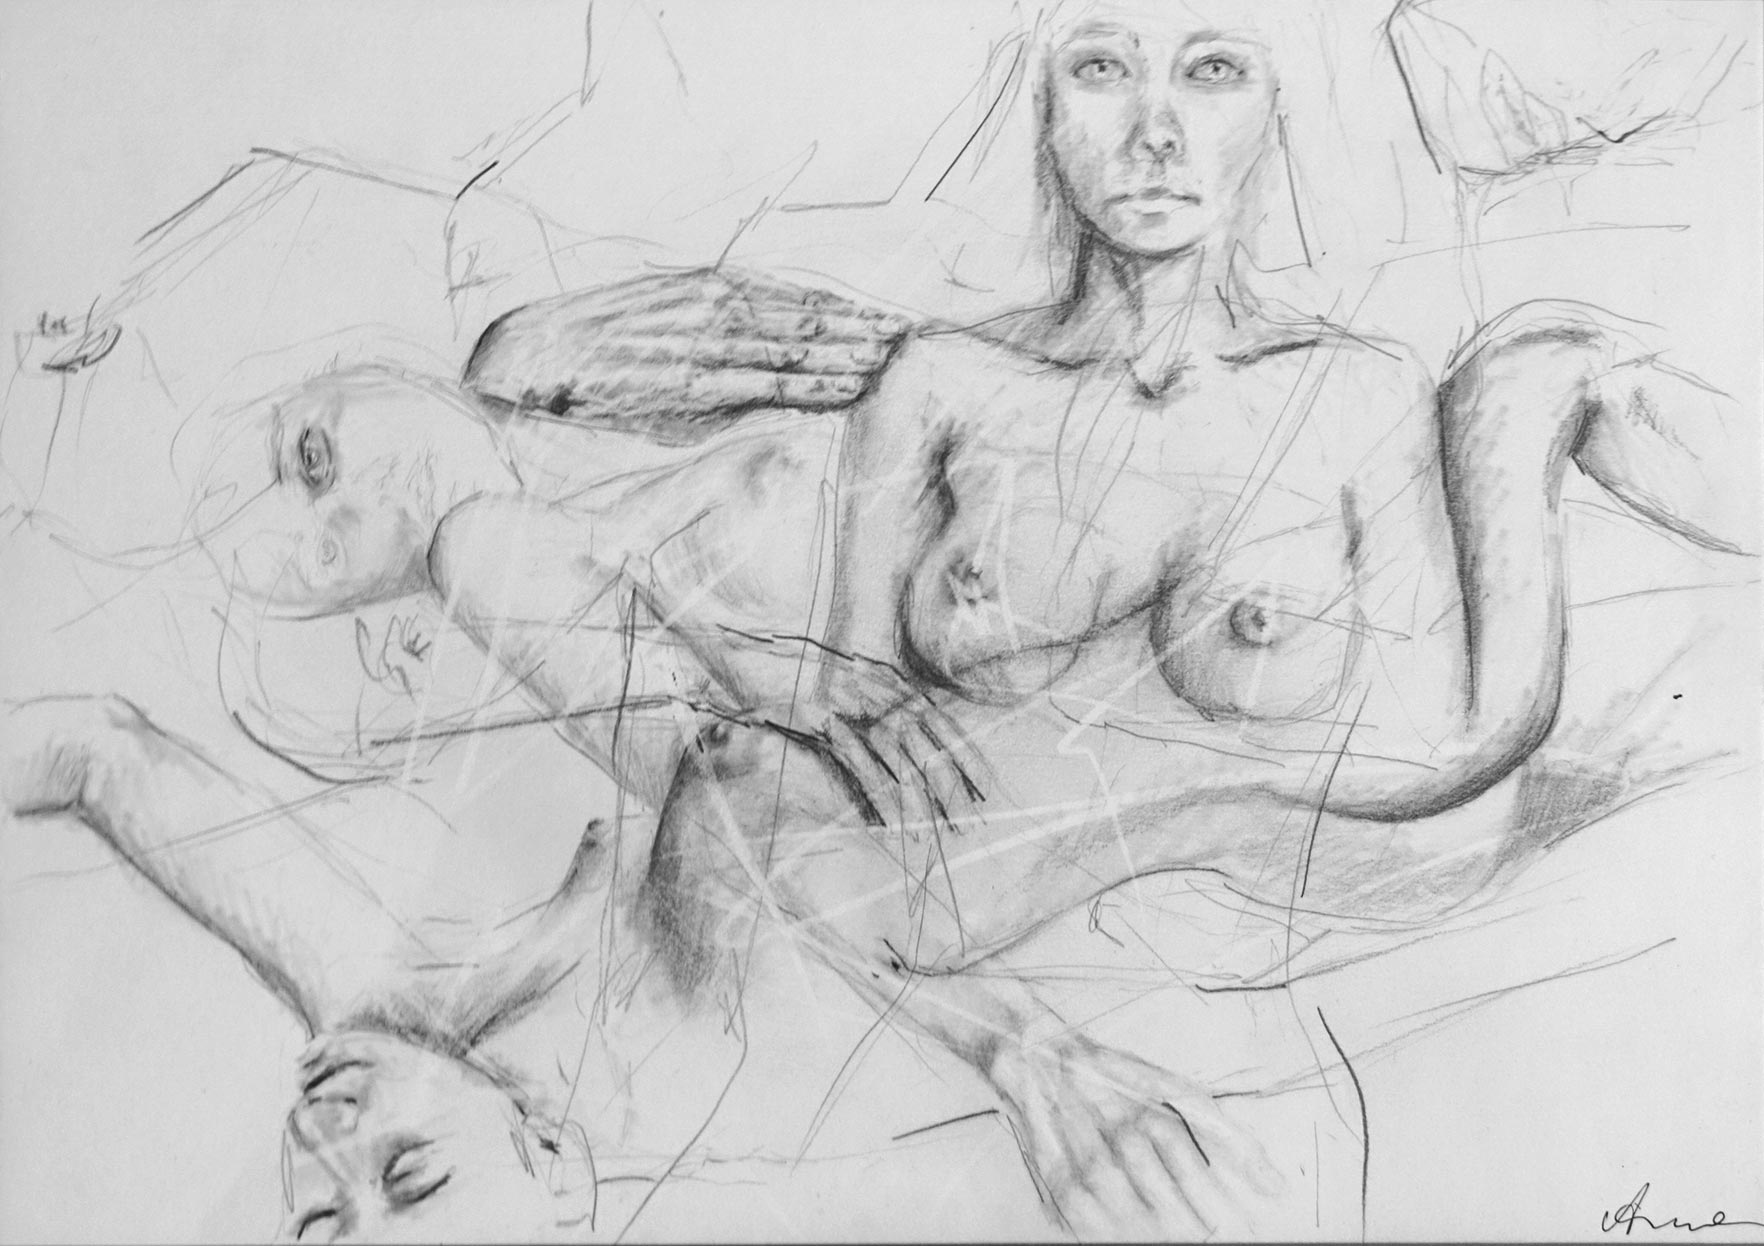 Silke Aurora, The ease of being G, drawing, 30 x 40 cm